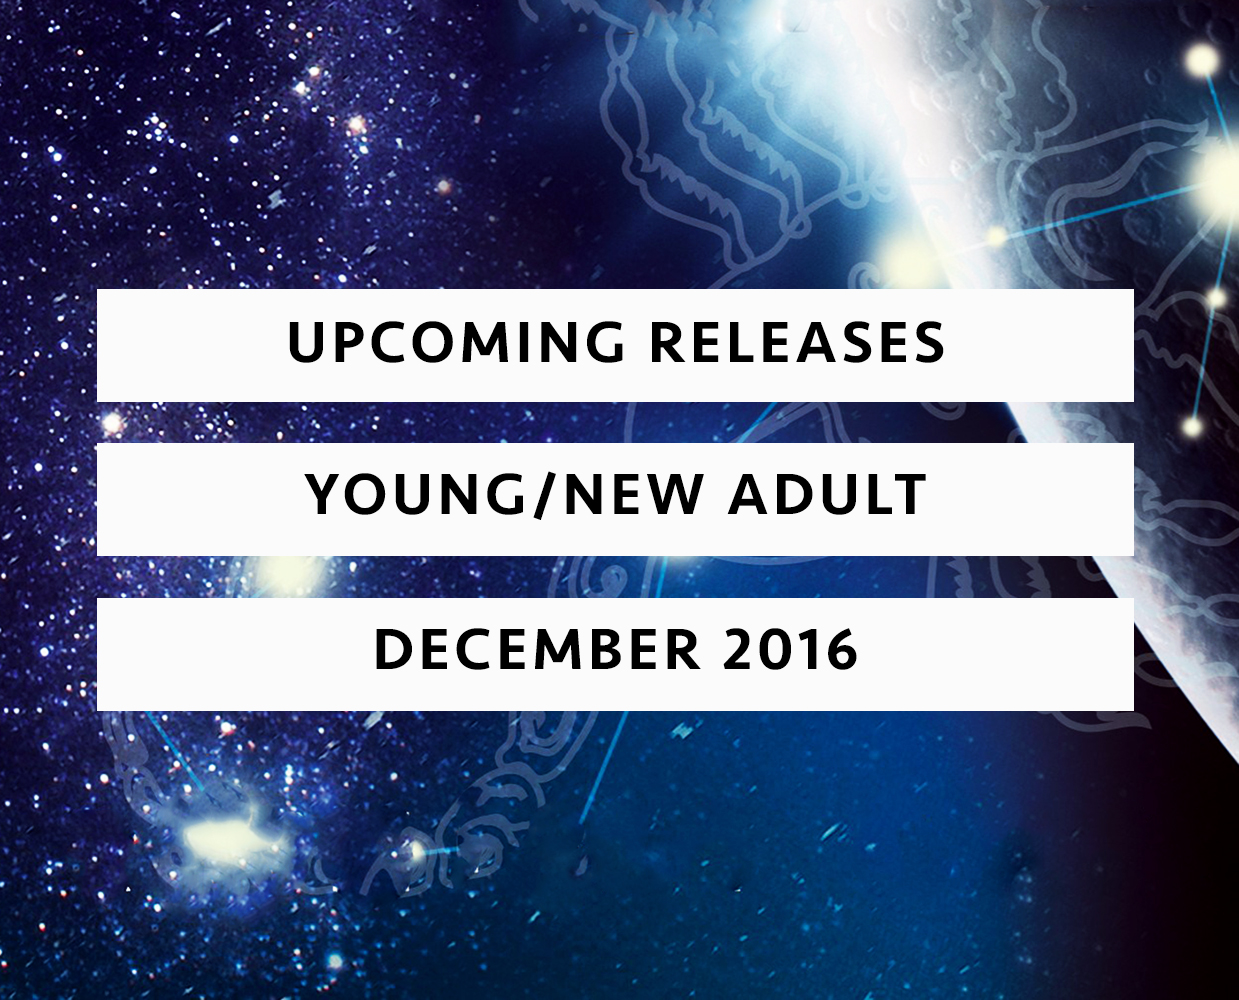 upcoming releases december 2016 ya